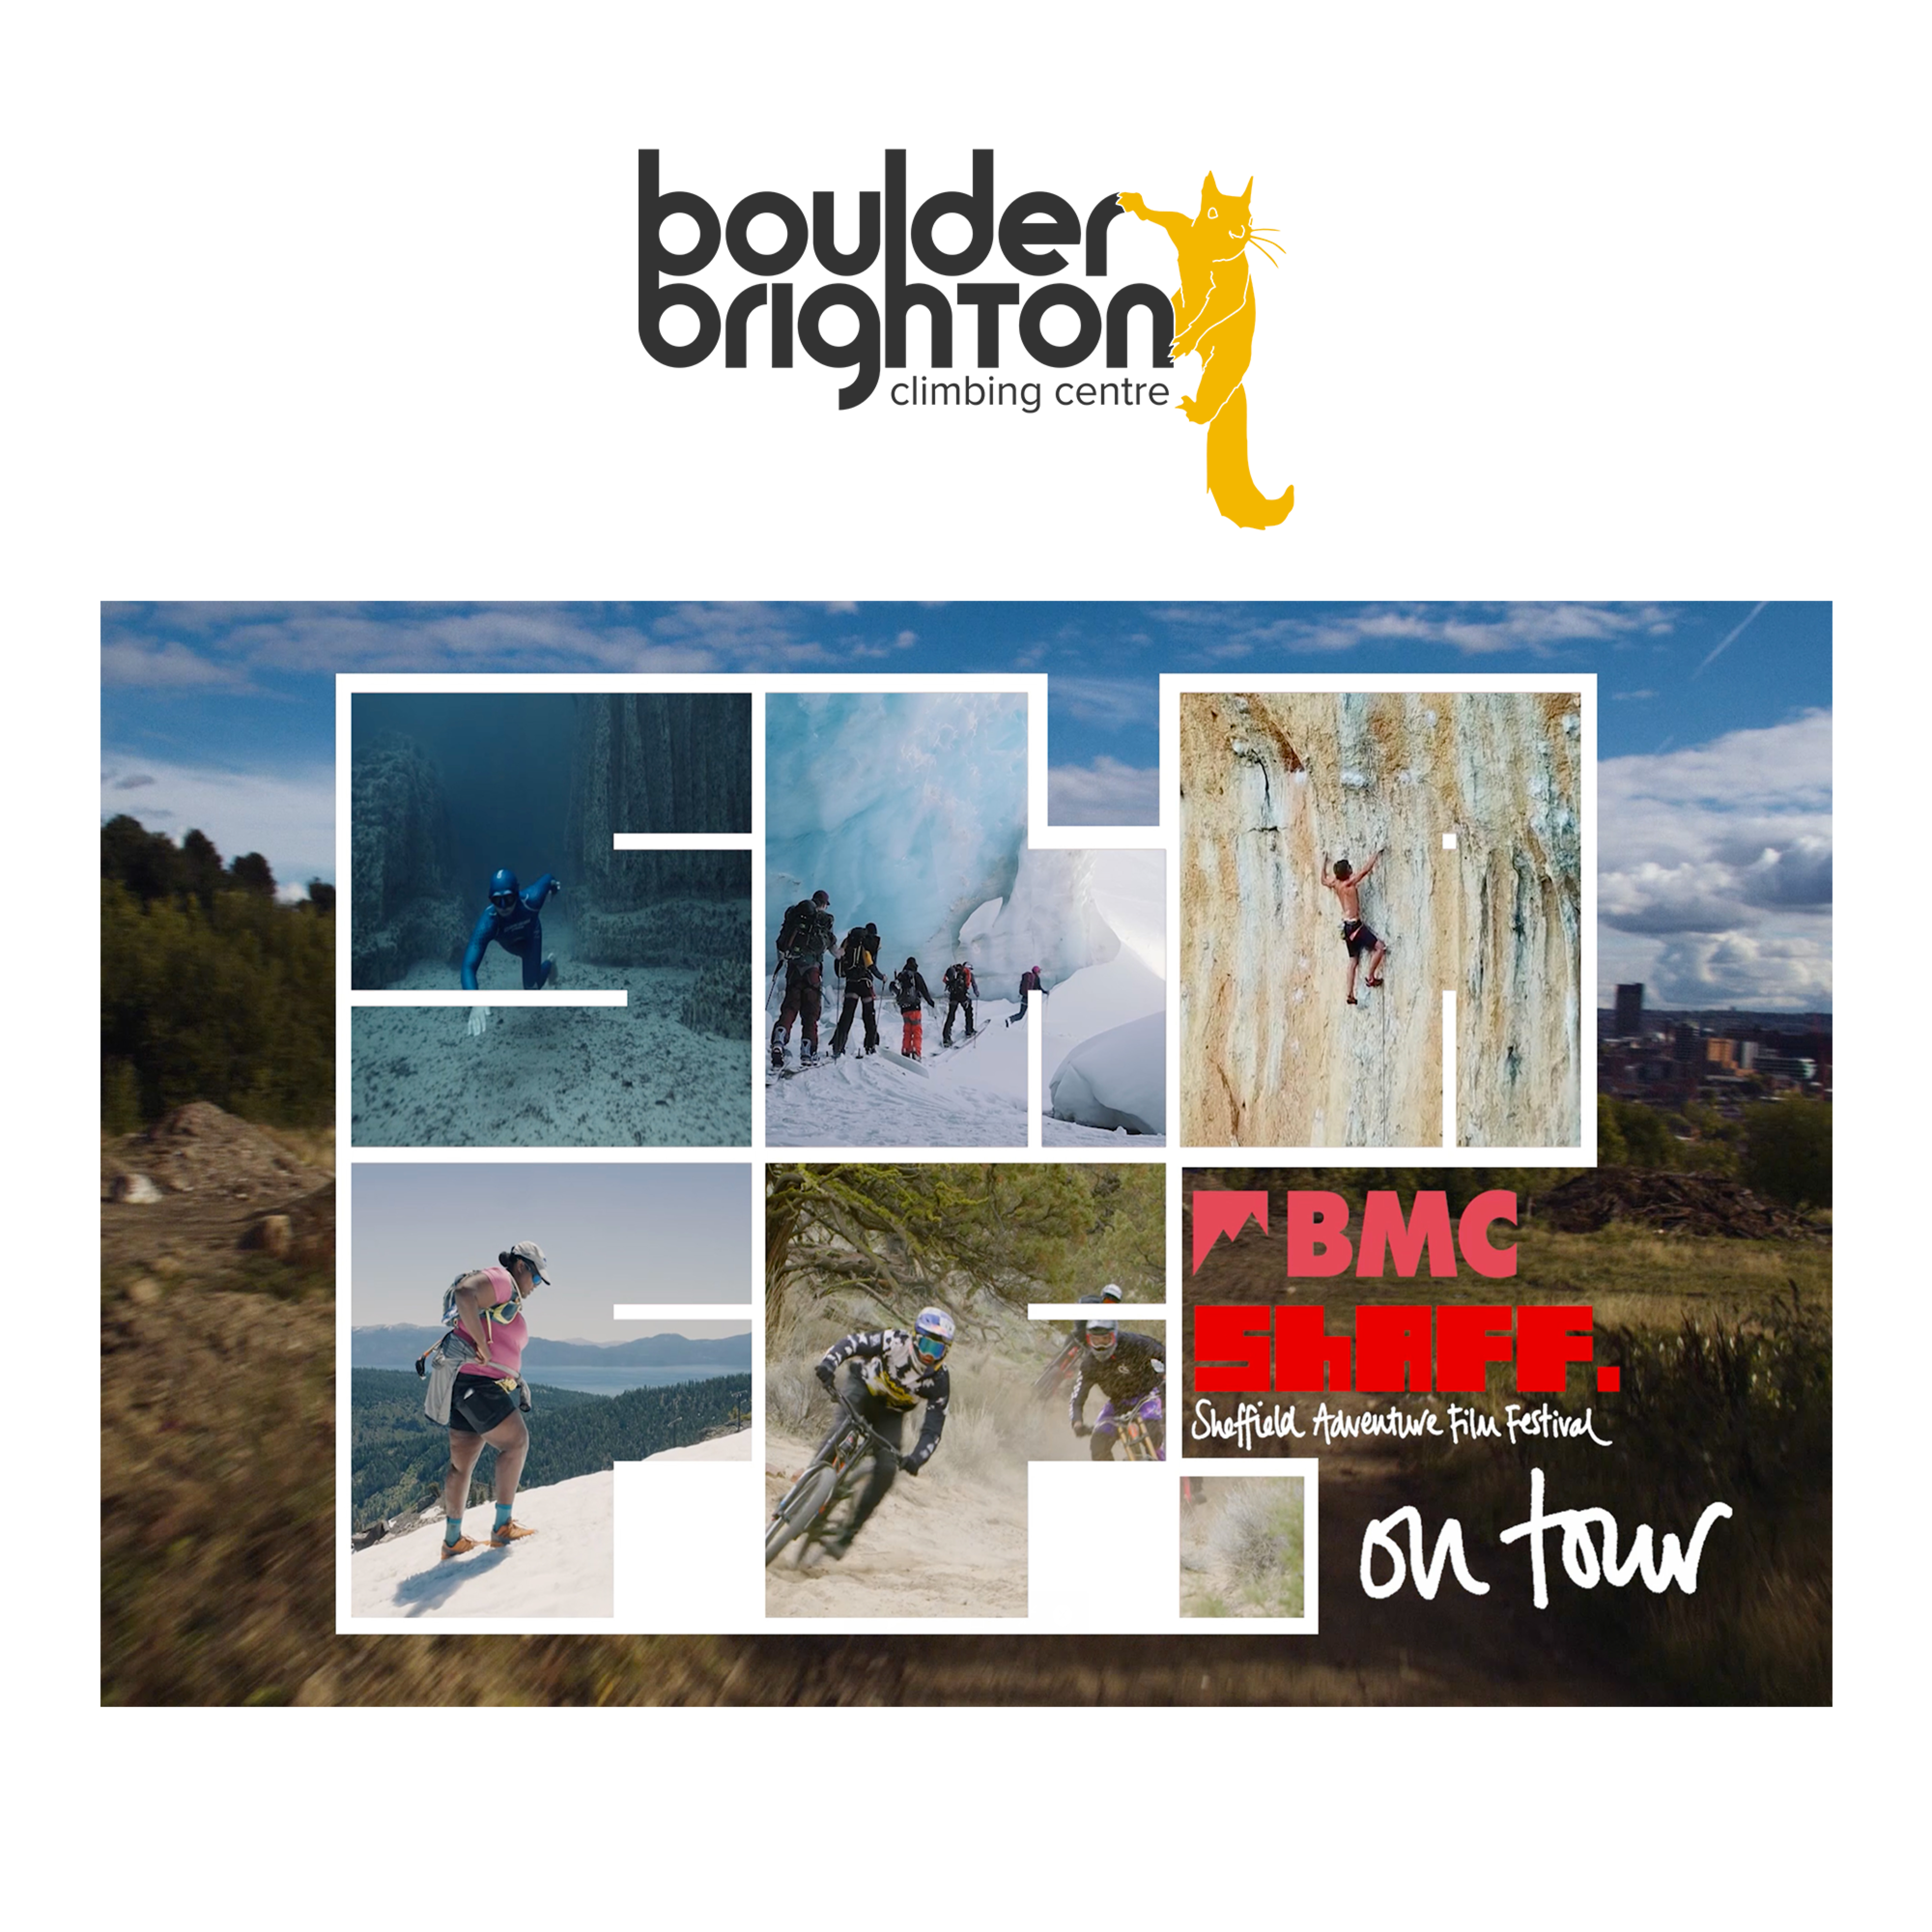 The Best of ShAFF 2020 with Boulder Brighton